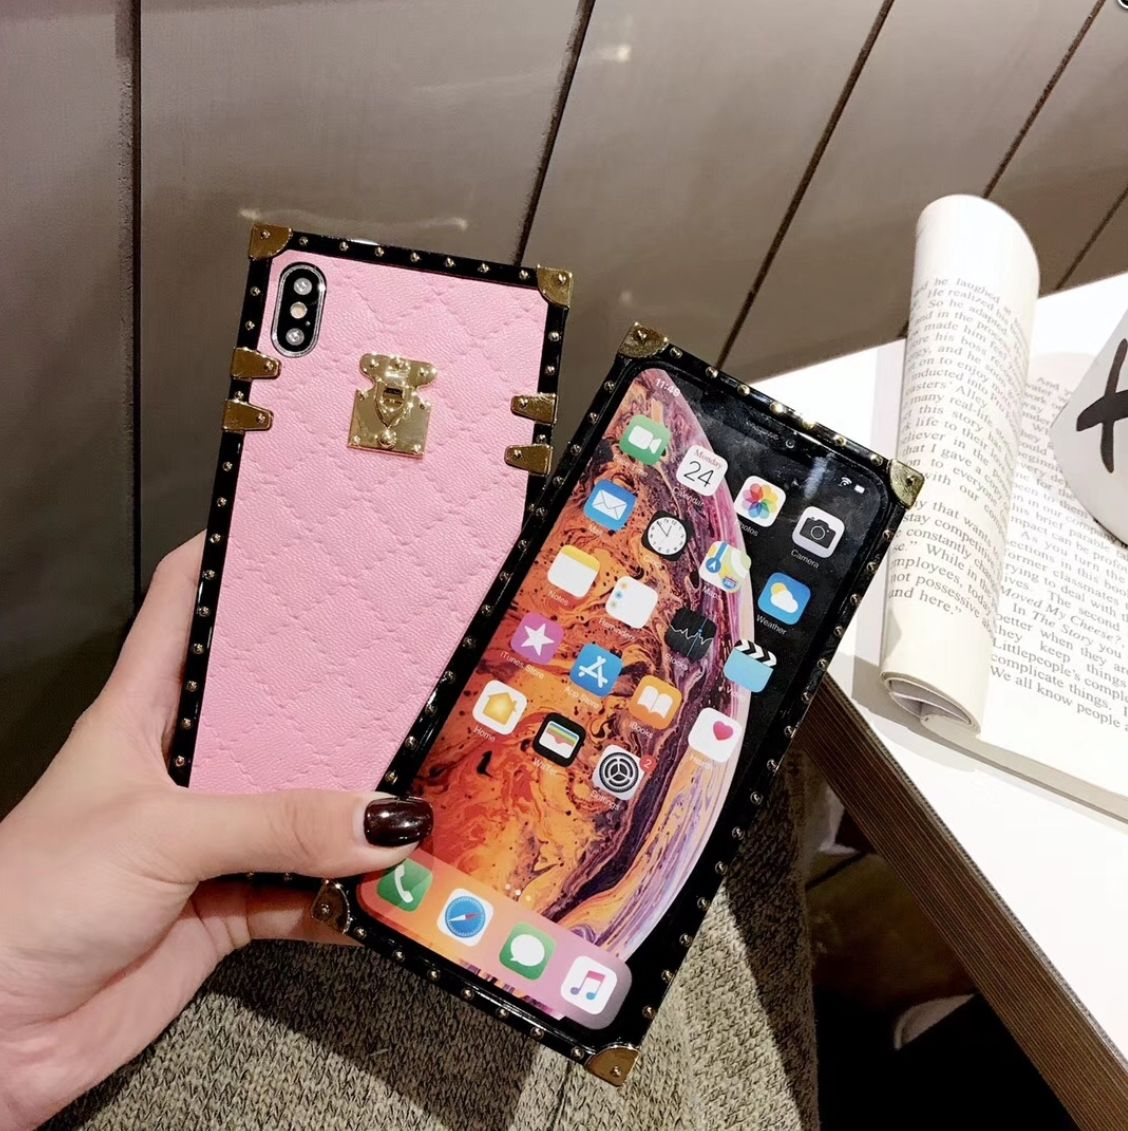 Pu leather cases for iphone 11 pro x xr xs max 8 7 plus 6